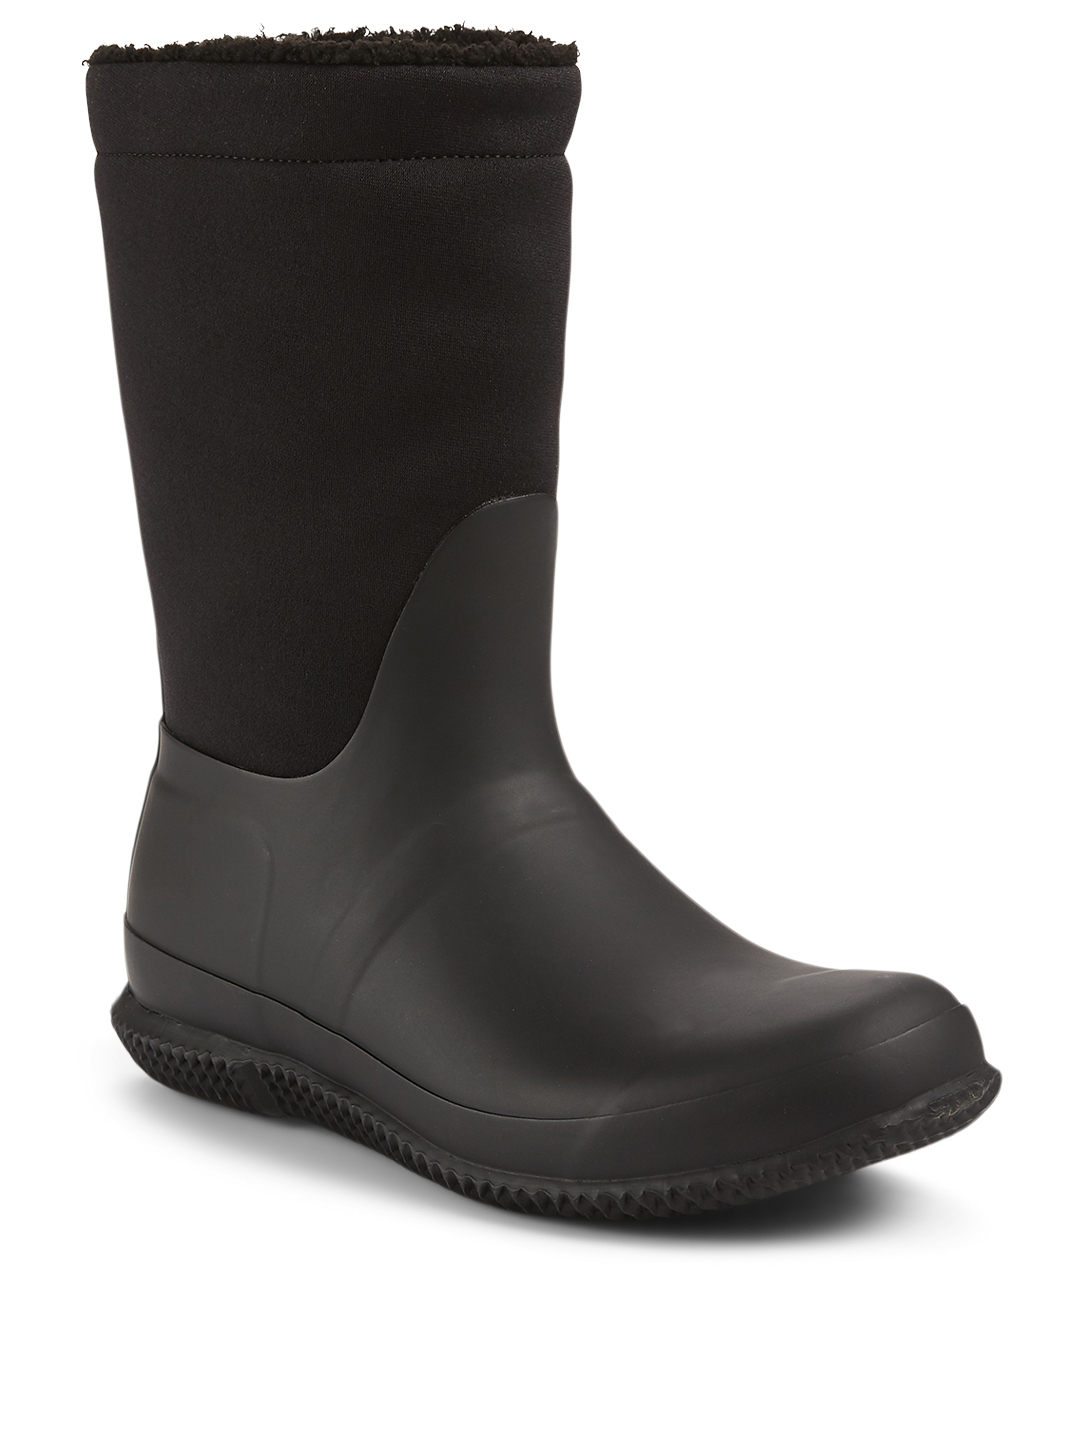 HUNTER Original Insulated Roll Top Neoprene And Rubber Rain Boots With Sherpa Lining Women's Black